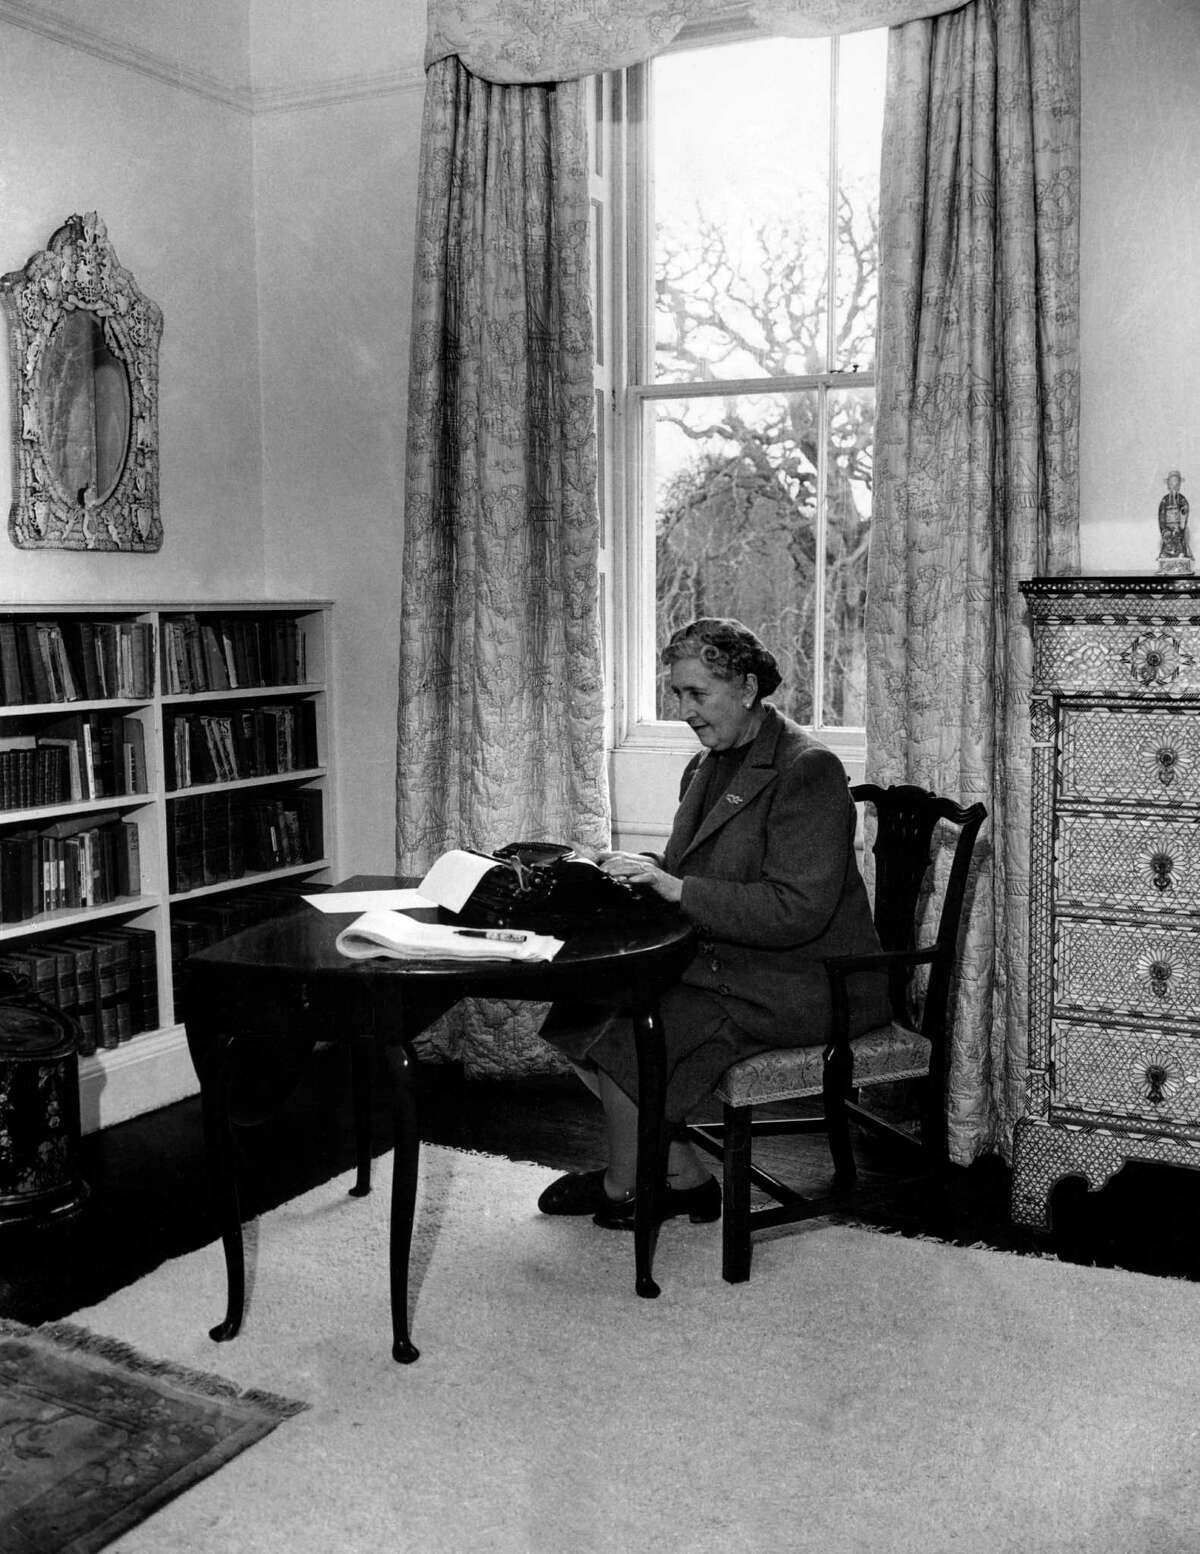 Dame Agatha Christie at work on her typewriter in her home, Greenway House, in Devonshire. Christie was famous for also working in her bathtub while eating lots of apples.